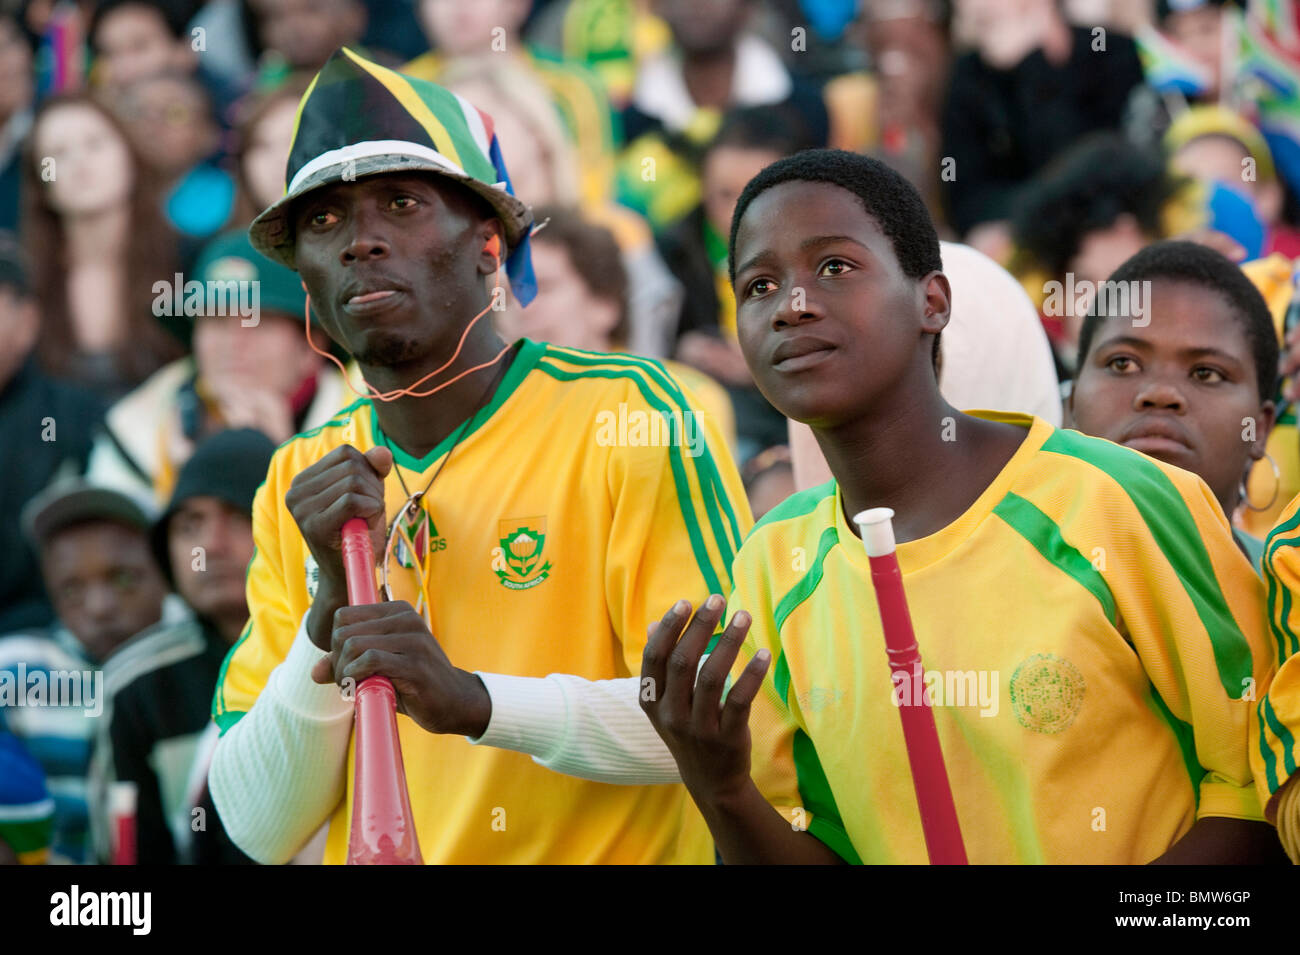 Public viewing of the FIFA World Cup 2010 at V&A Waterfront in Cape Town South Africa - Stock Image